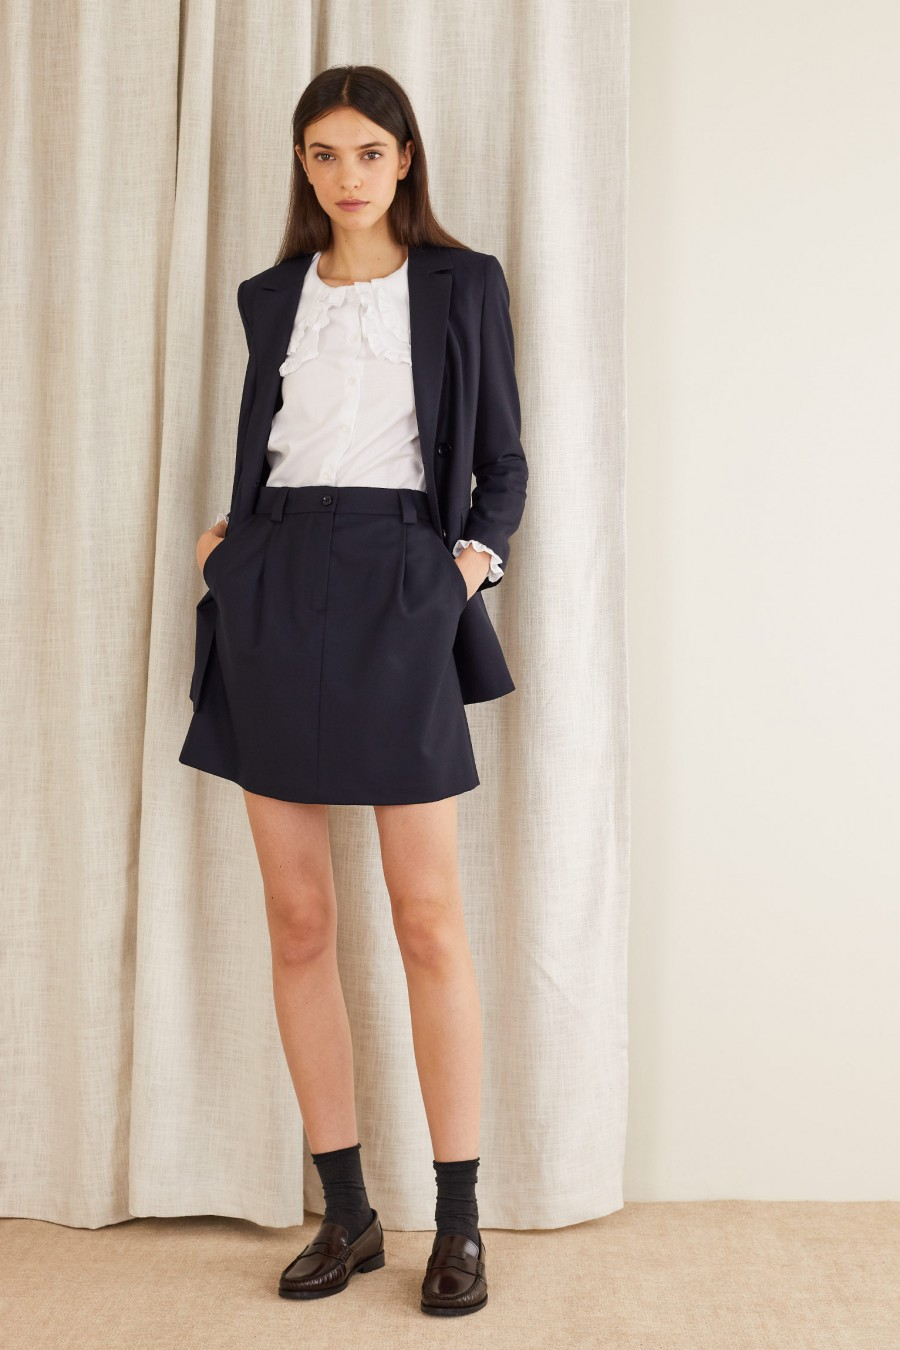 classic style with skirt and blazer